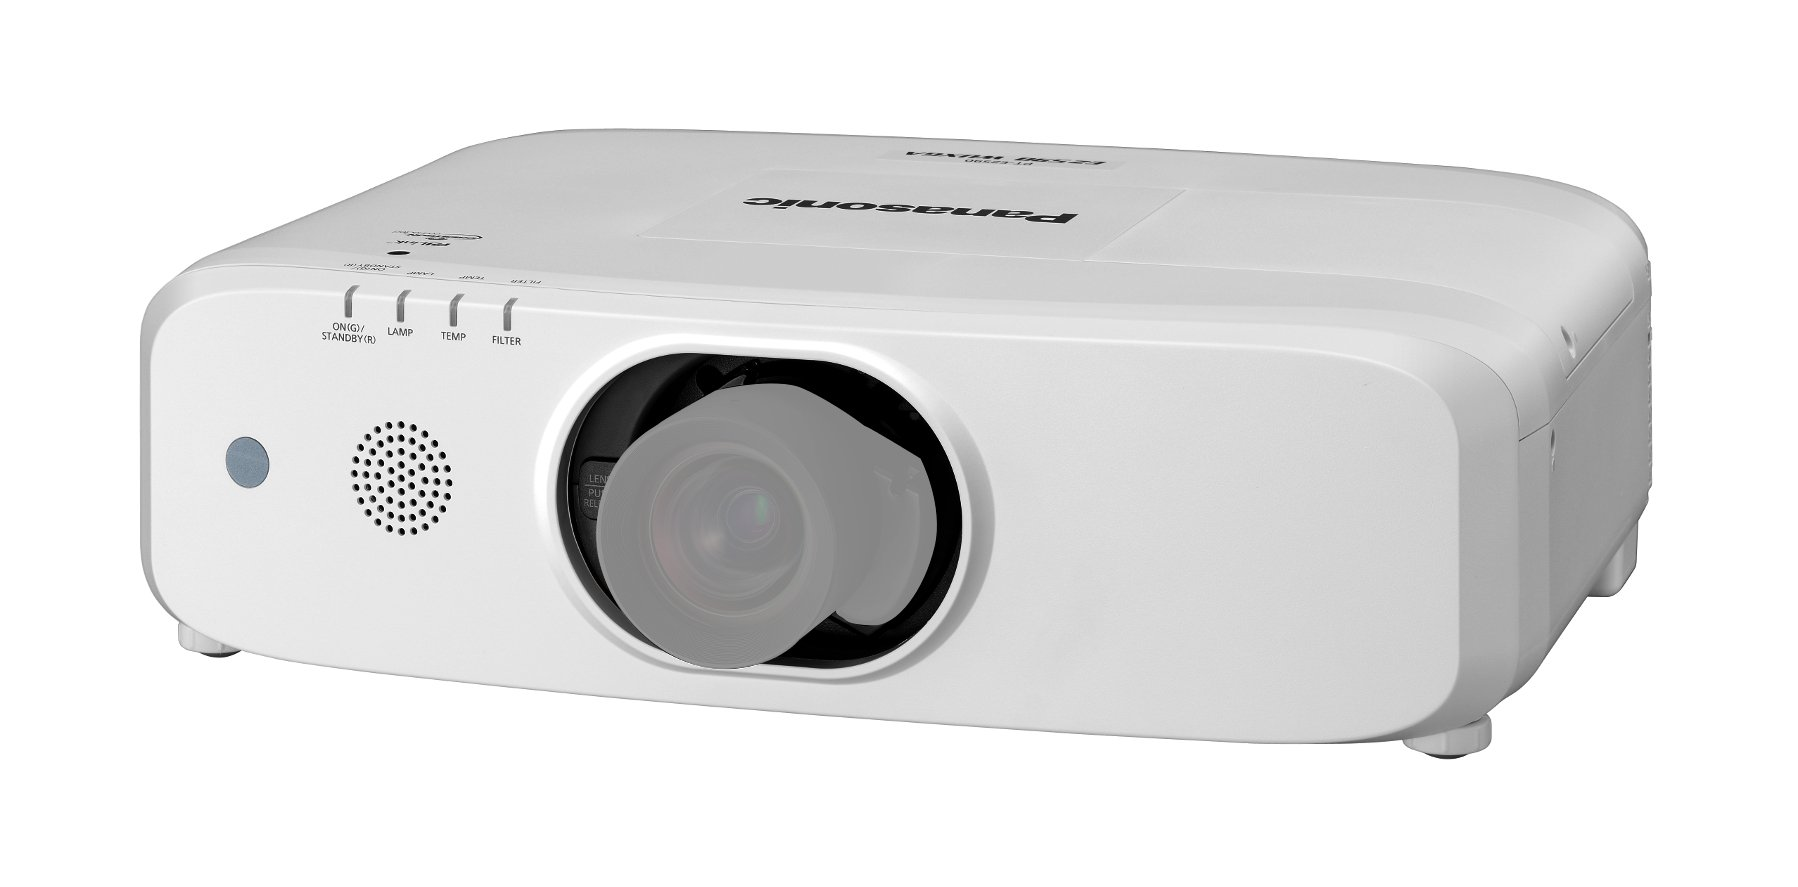 5400 Lumens WUXGA LED Projector Body